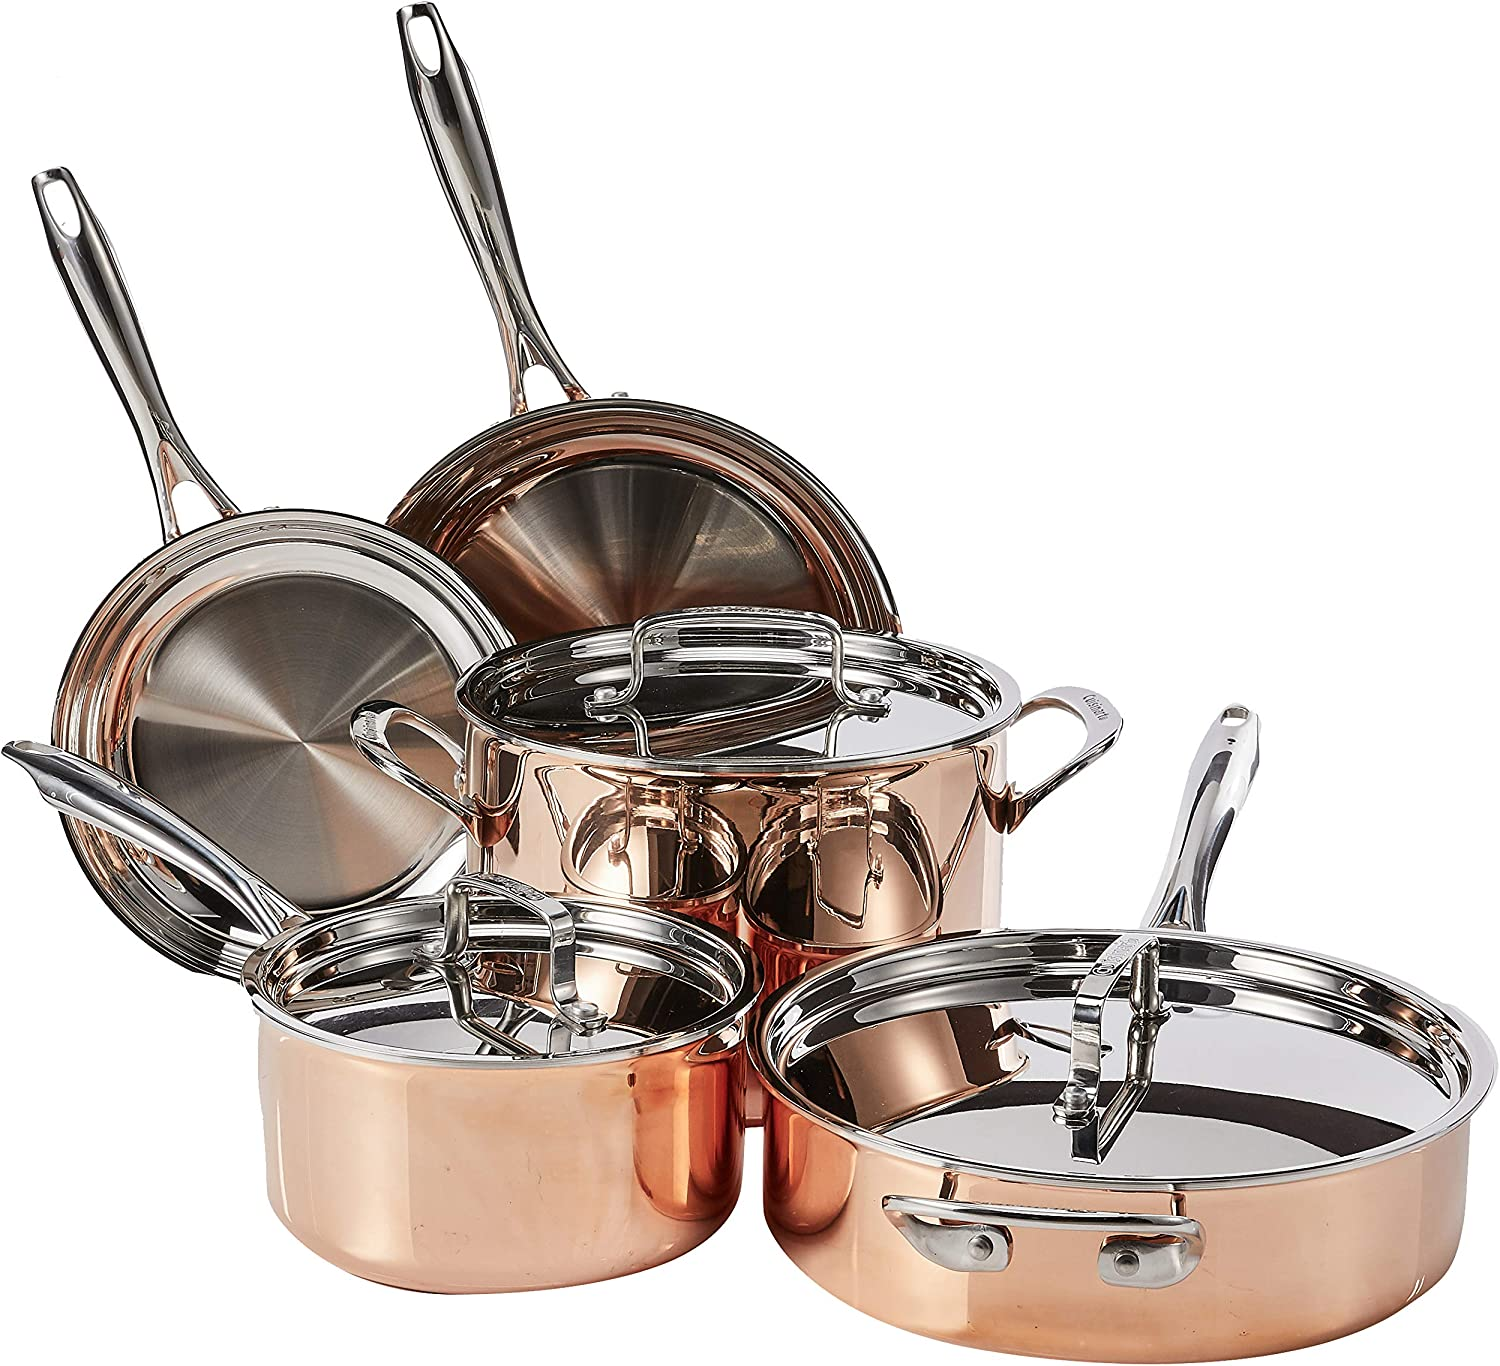 Cuisinart Copper Collection Cookware REVIEW